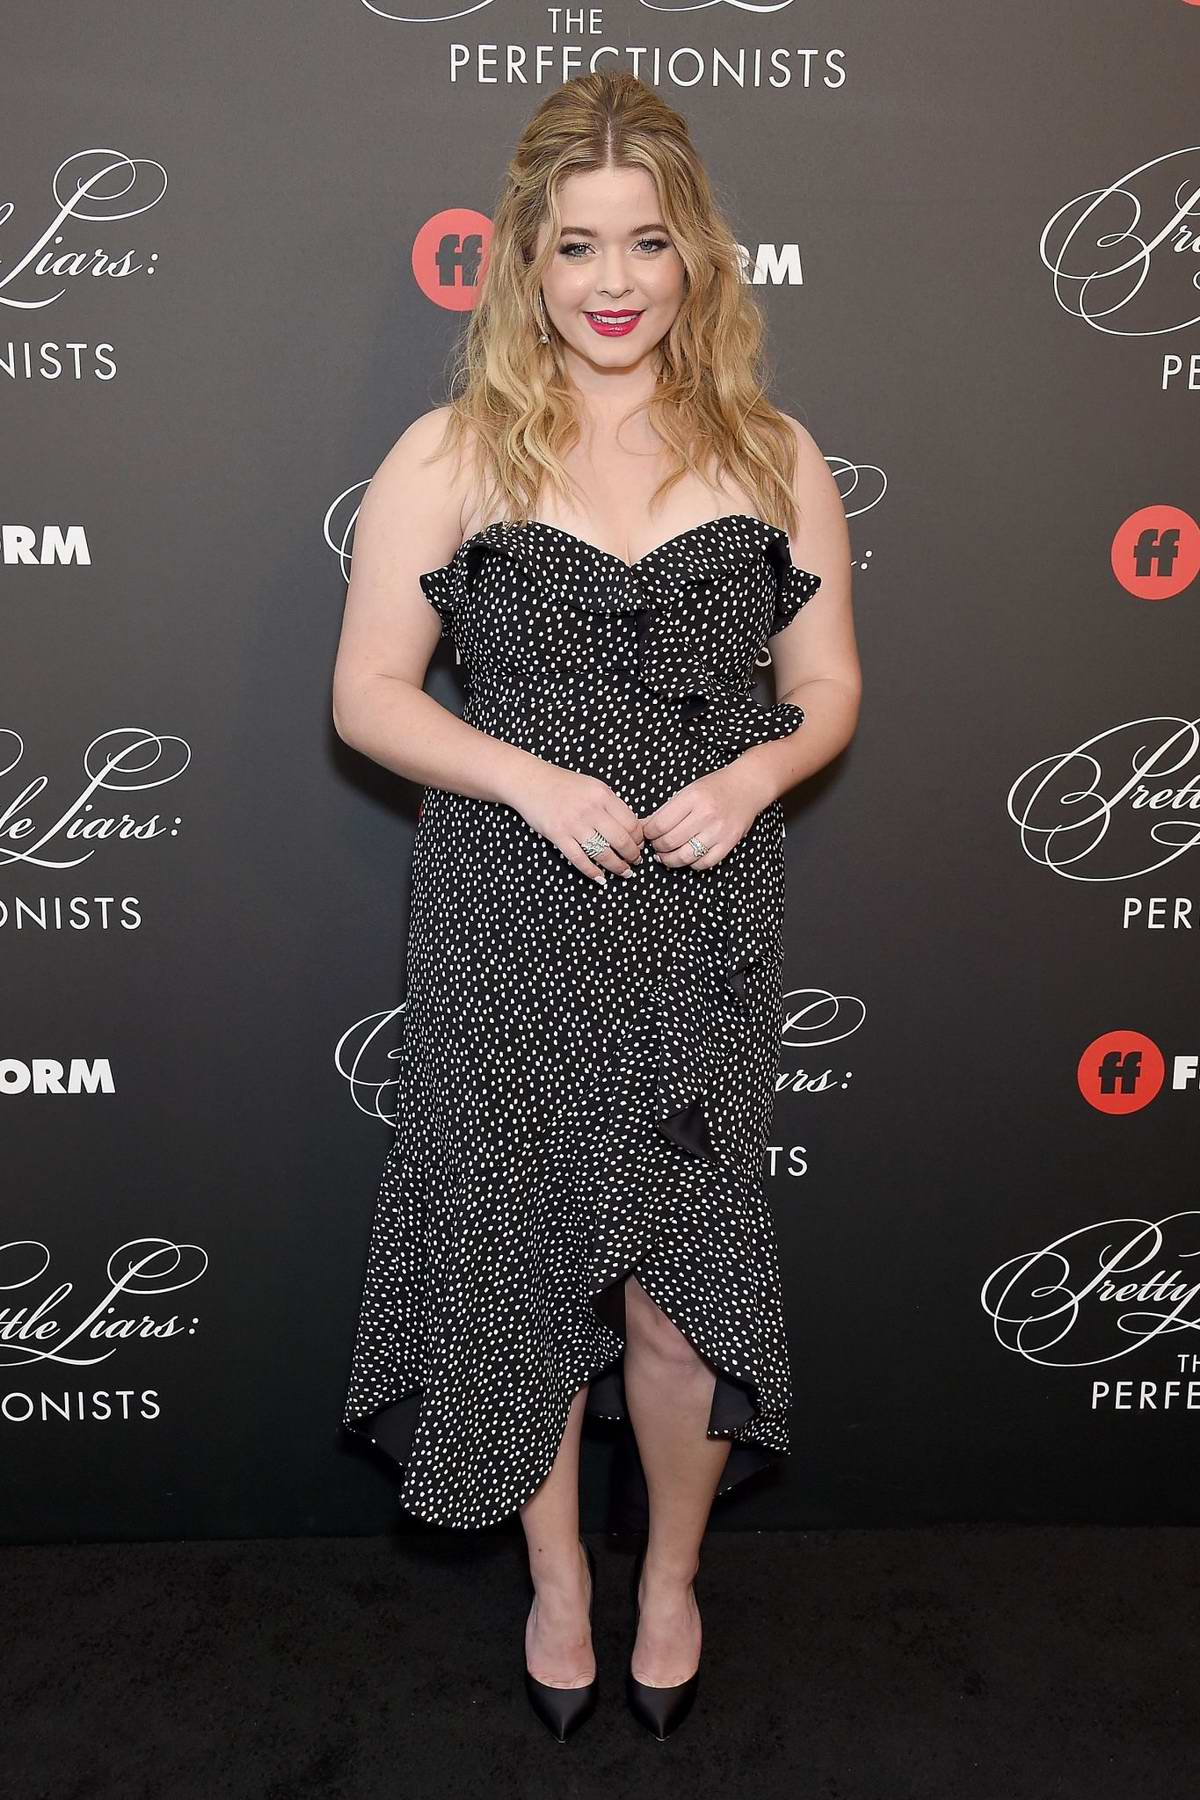 Sasha Pieterse attends 'Pretty Little Liars: The Perfectionists' premiere at Hollywood Athletic Club in Hollywood, California